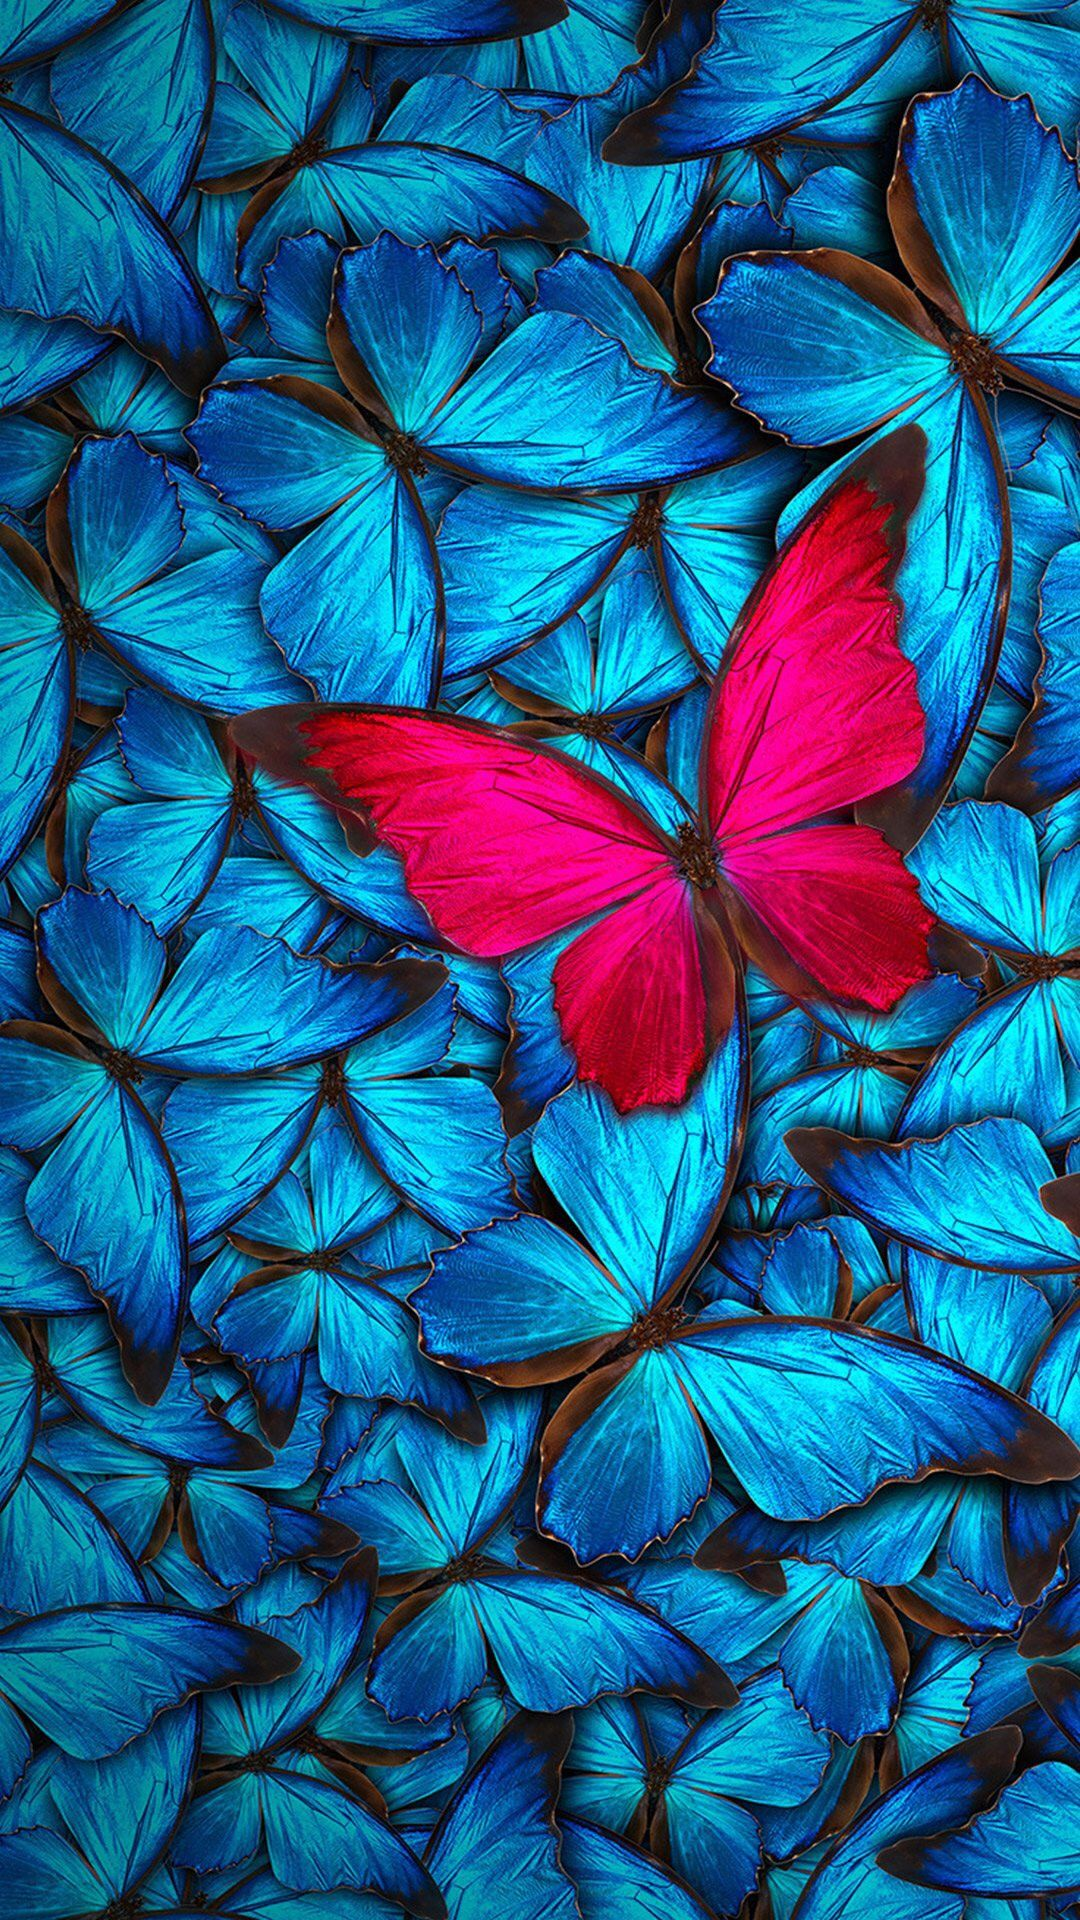 Pin by Silvia on Wallpaper vol.36 | Butterfly wallpaper ...